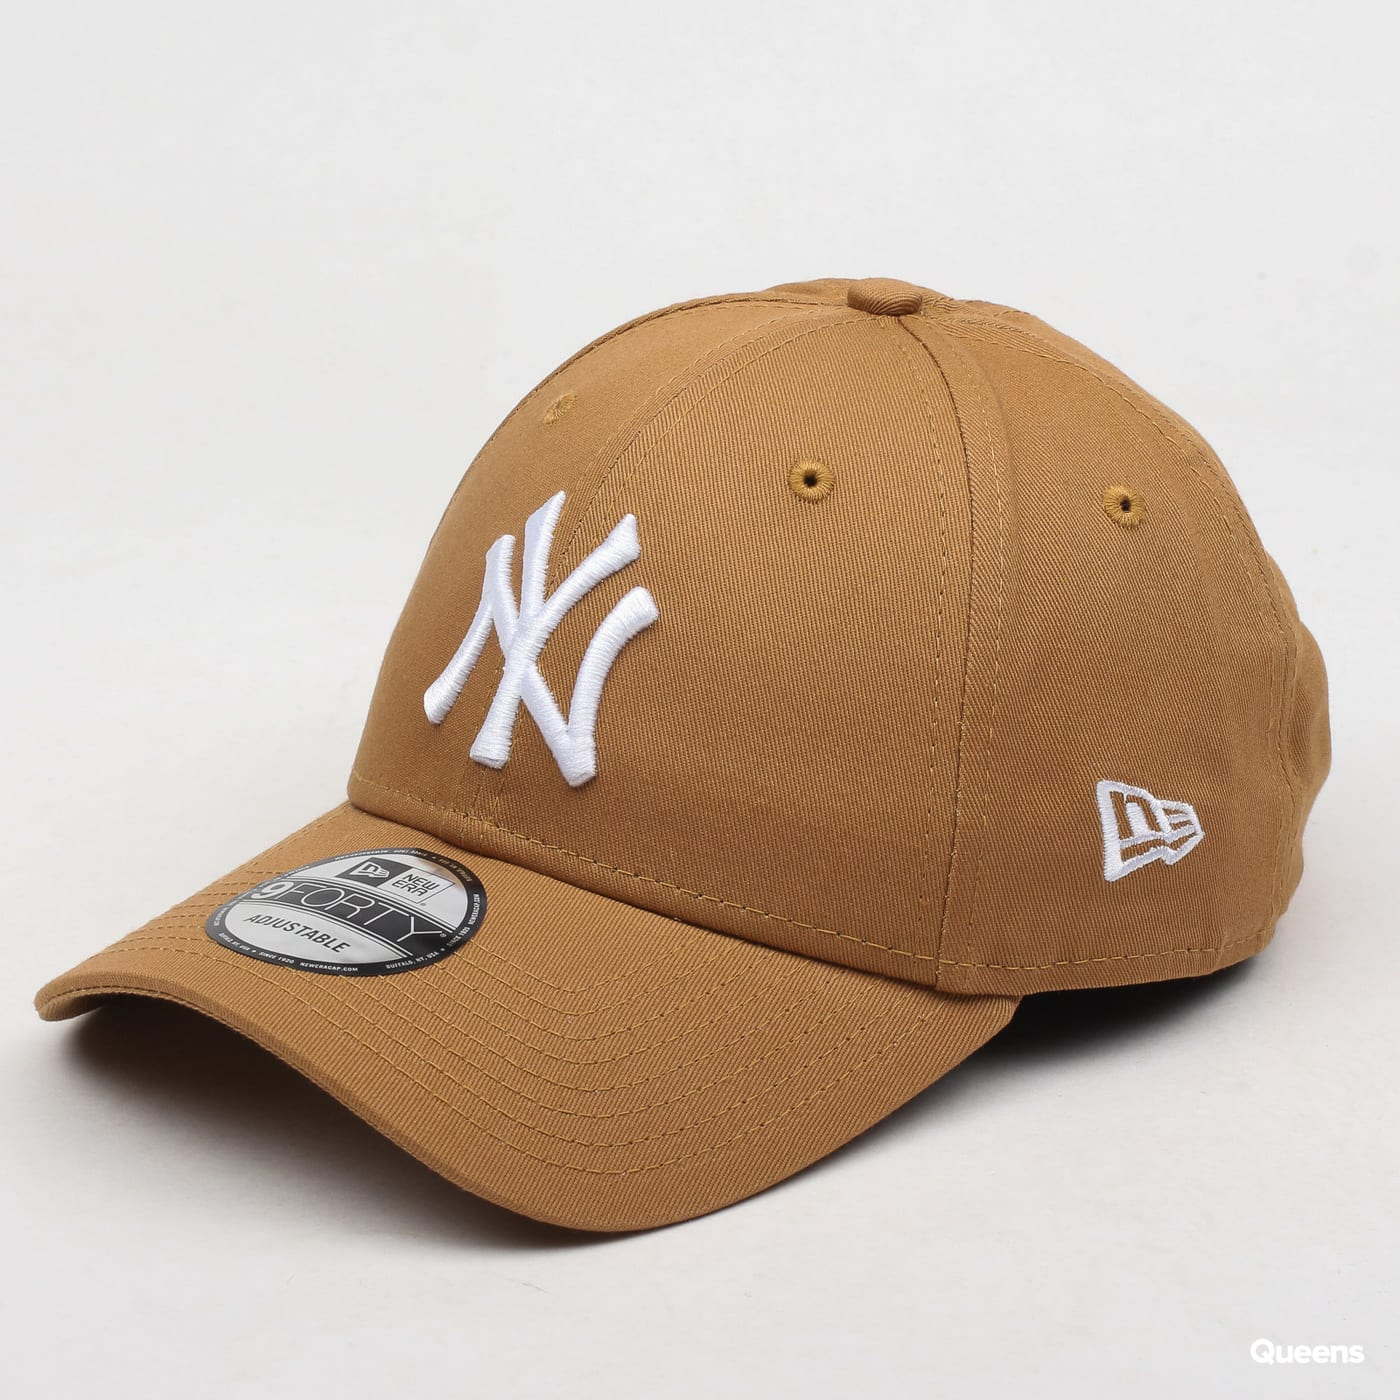 Kšiltovka New Era 940 MLB League Essential NY (11794679) – Queens 💚 1d9c5a3947